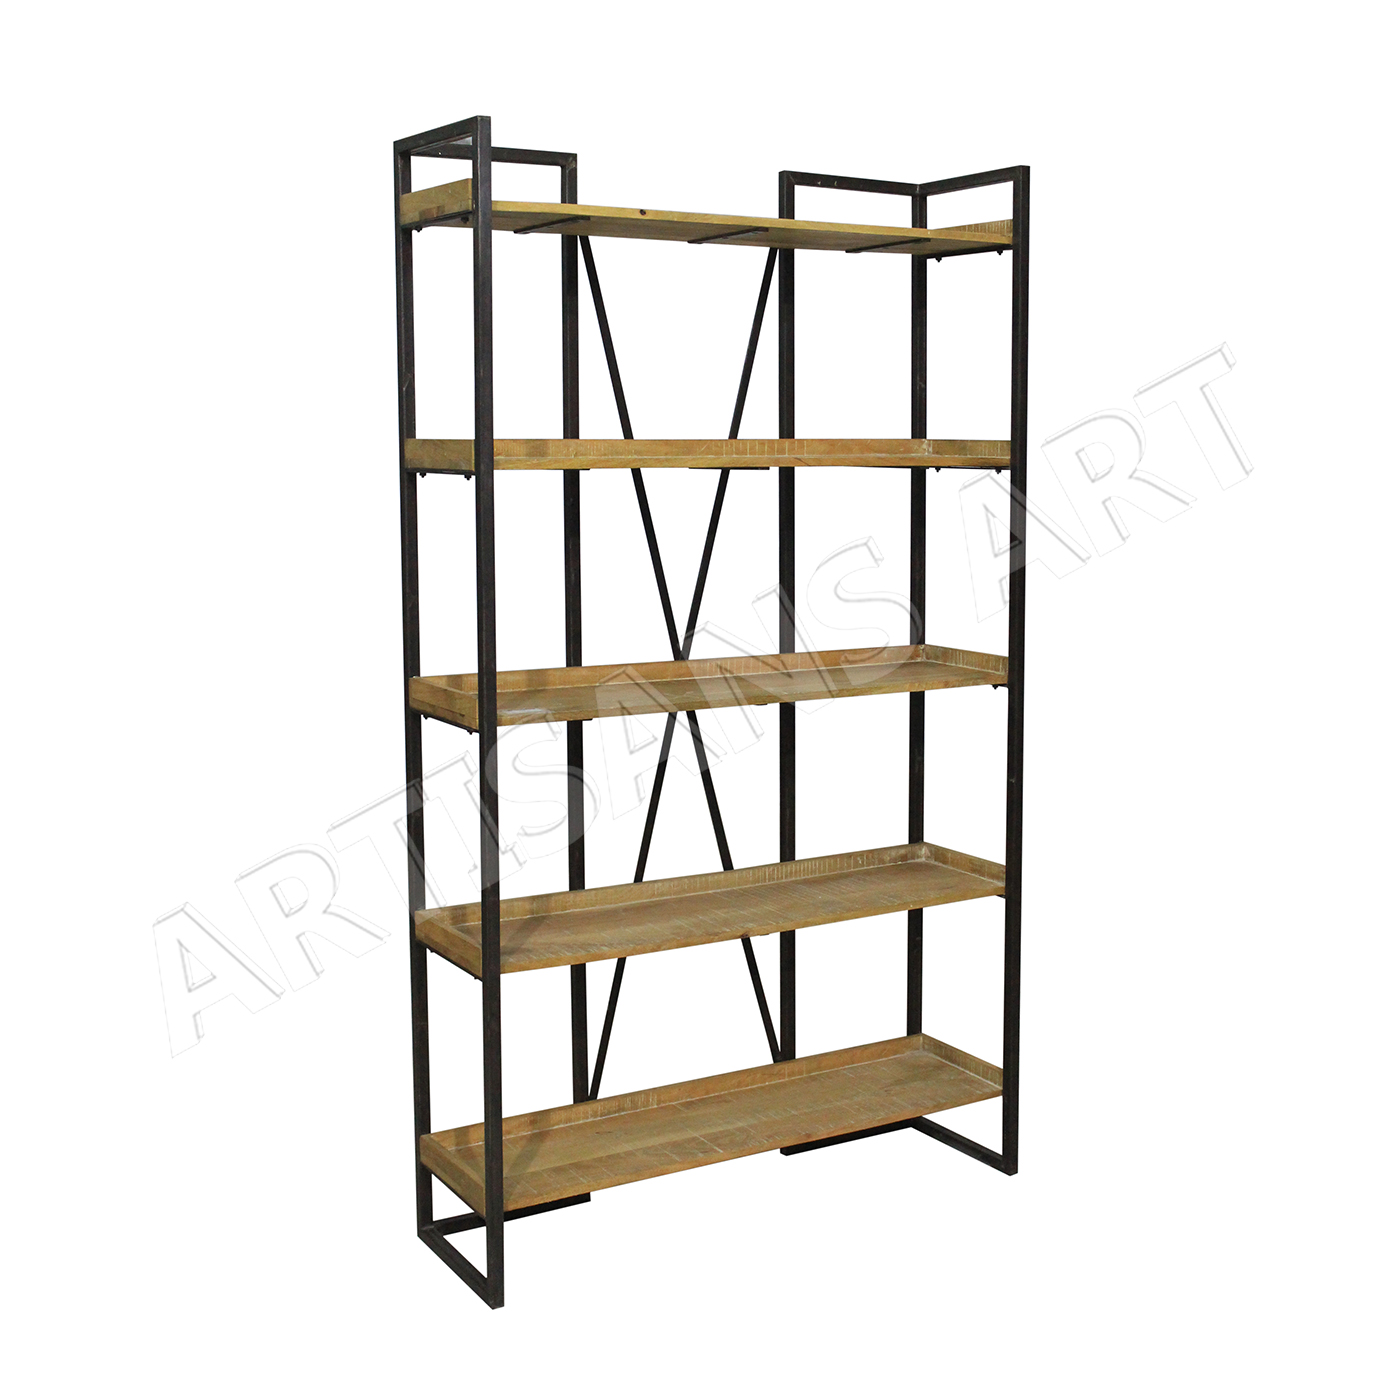 Mid Centuray Rustic Industrial Metal Wood Bookshelf Modern Industrial Fantastic 5 Tier Bookshelf Knock Down Bookshelf Buy Industrial Bookshelf